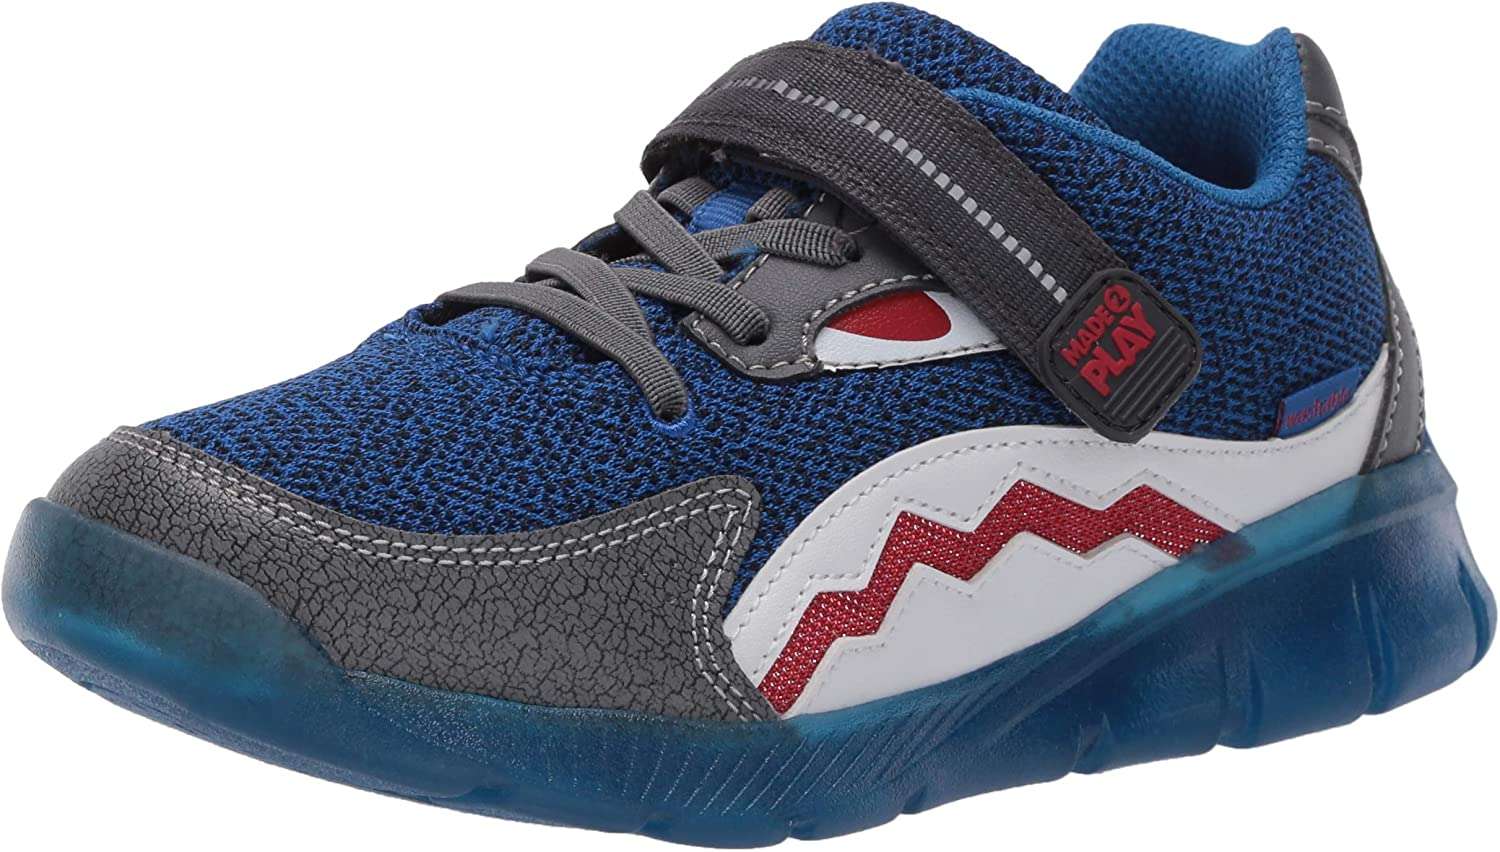 Stride Rite Kids' Lighted Shark Sneaker